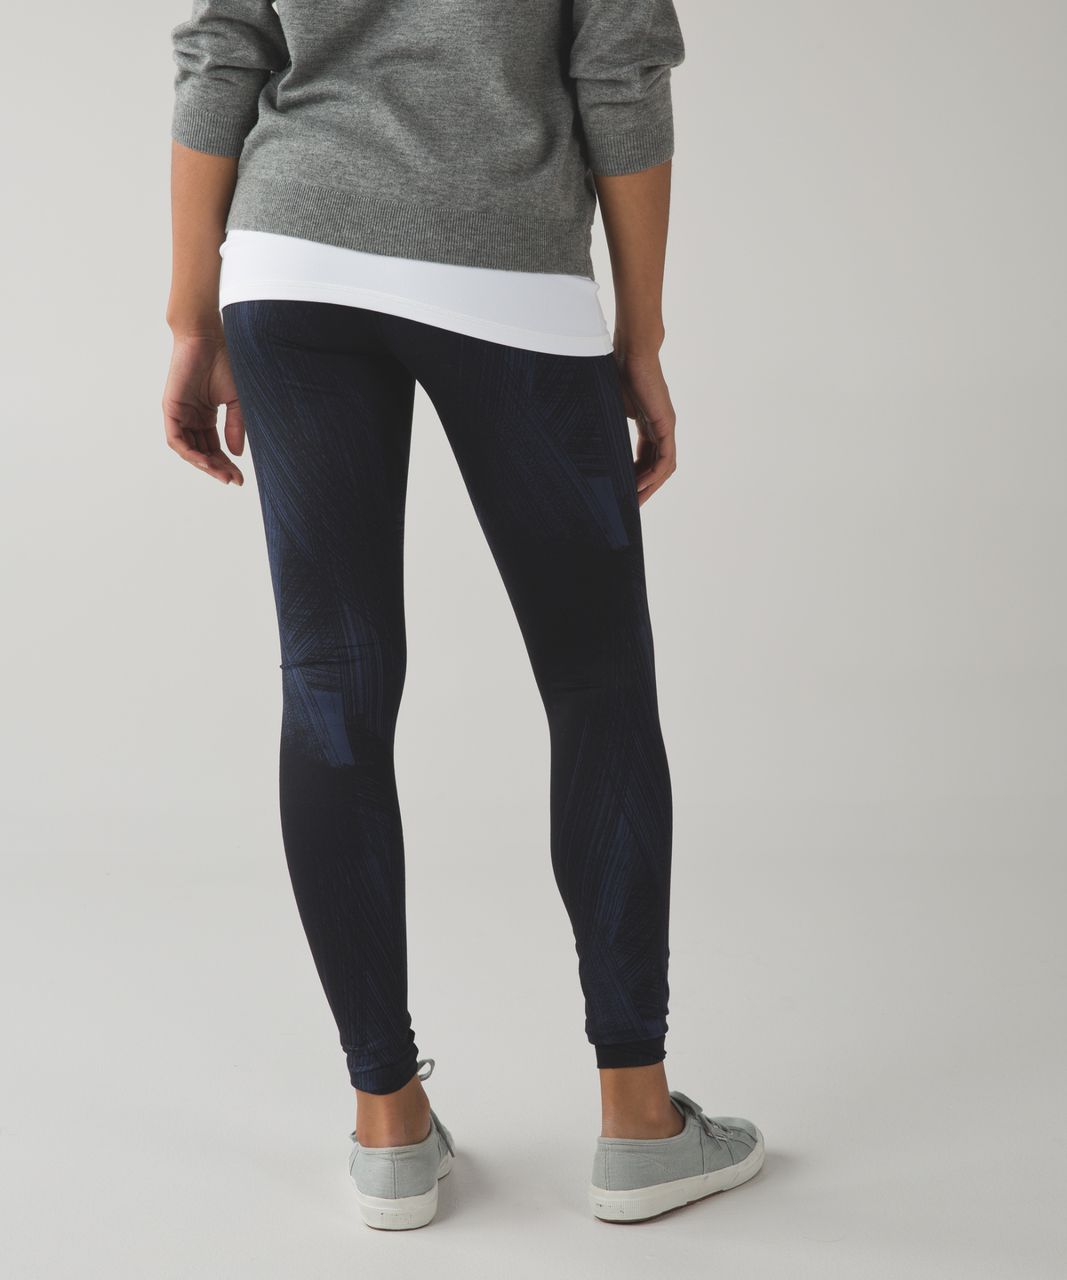 Lululemon Wunder Under Pant III *Full-On Luon - Wind Chill Deep Navy Black / Deep Navy